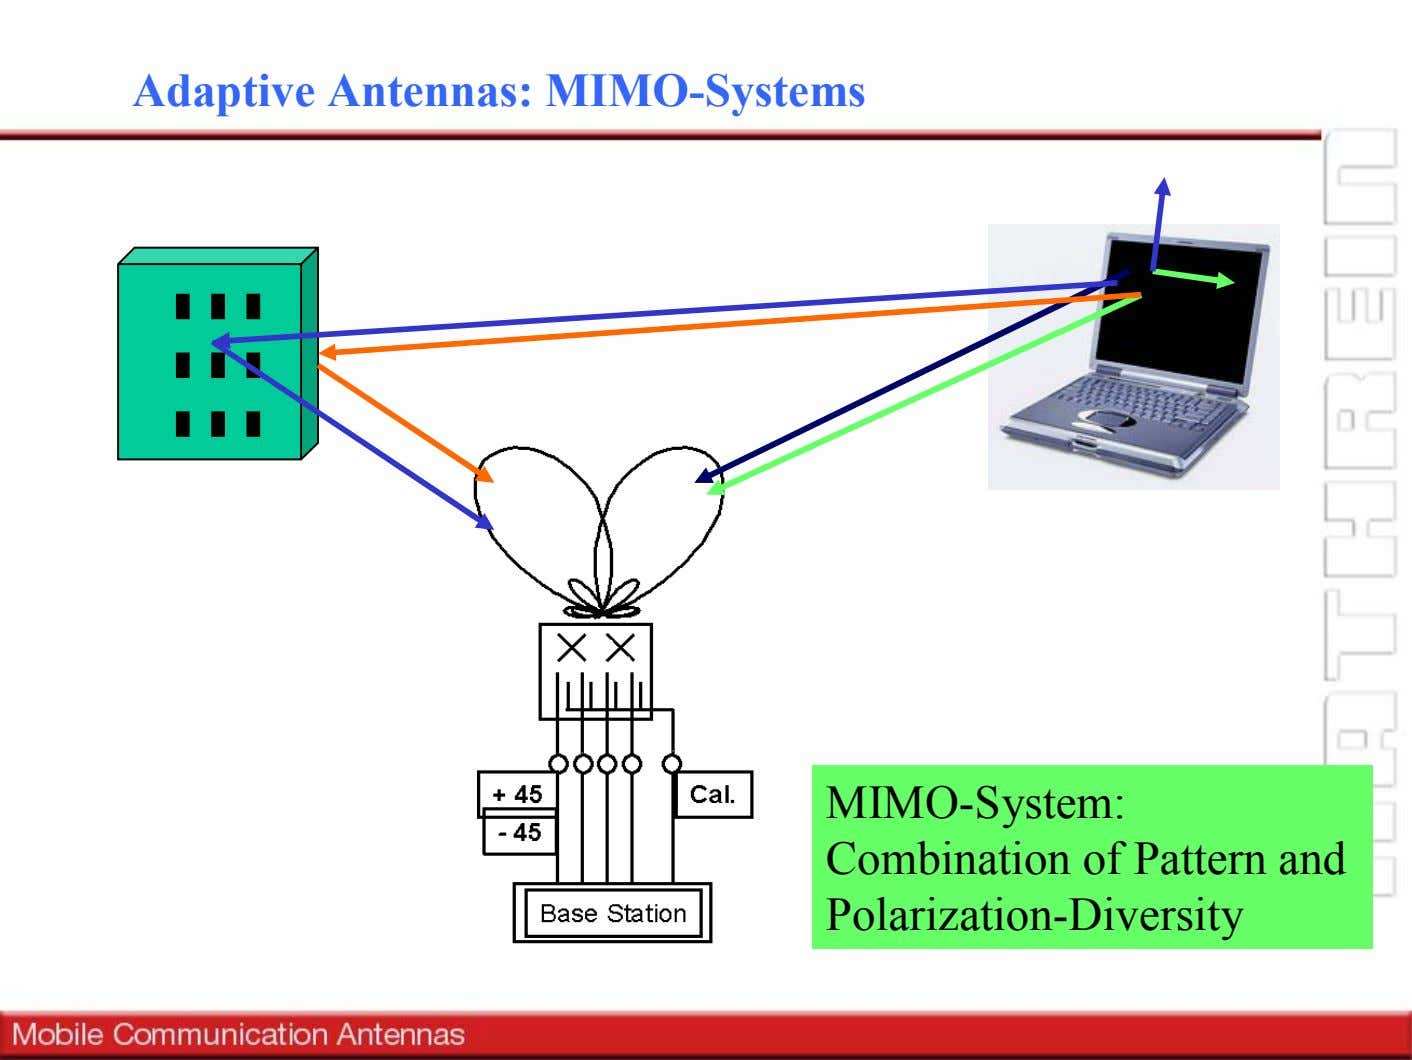 Adaptive Antennas: MIMO-Systems MIMO-System: Combination of Pattern and Polarization-Diversity